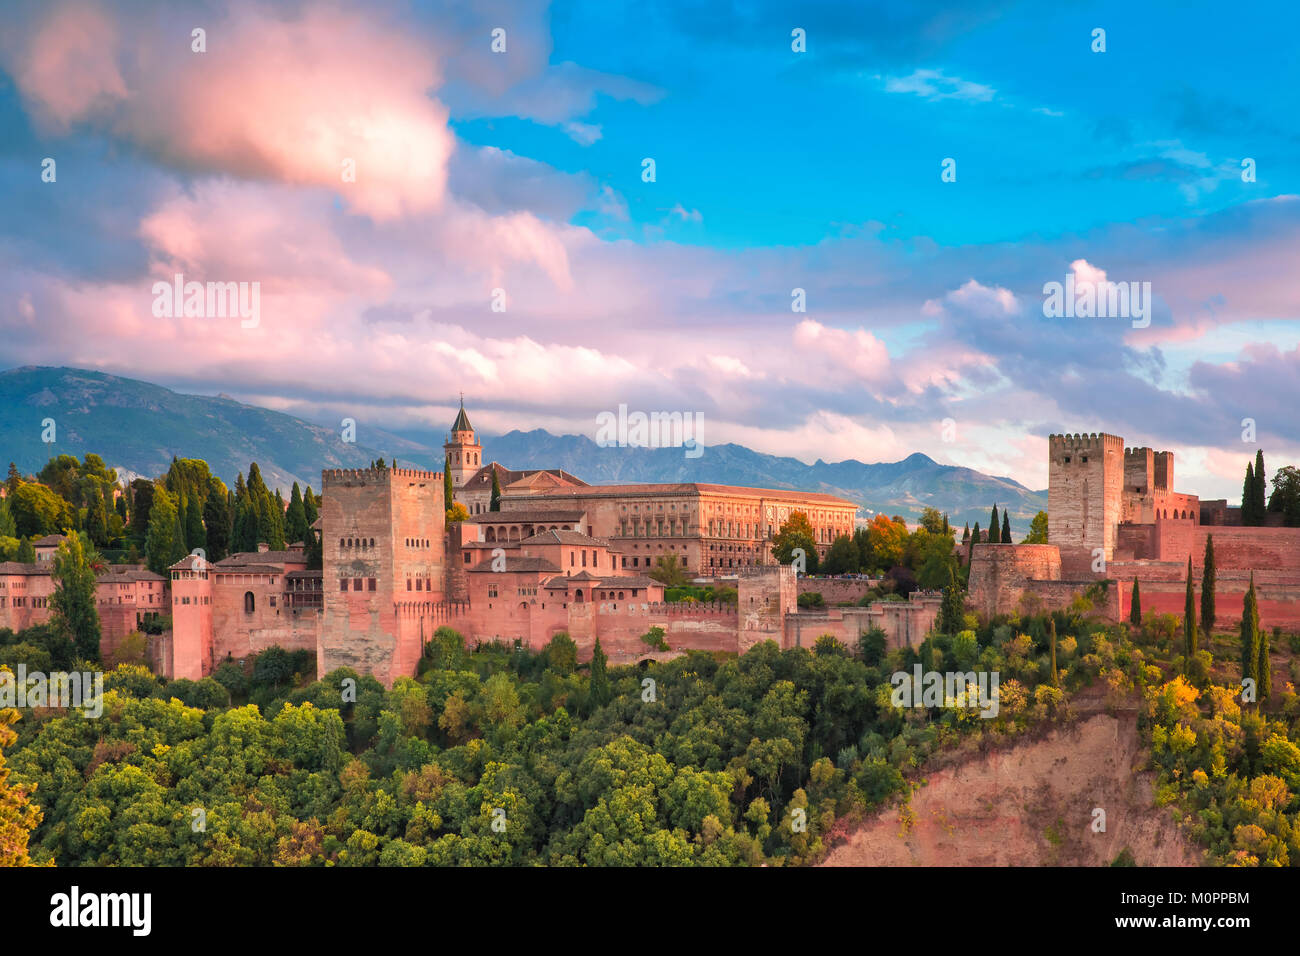 Alhambra at sunset in Granada, Andalusia, Spain - Stock Image